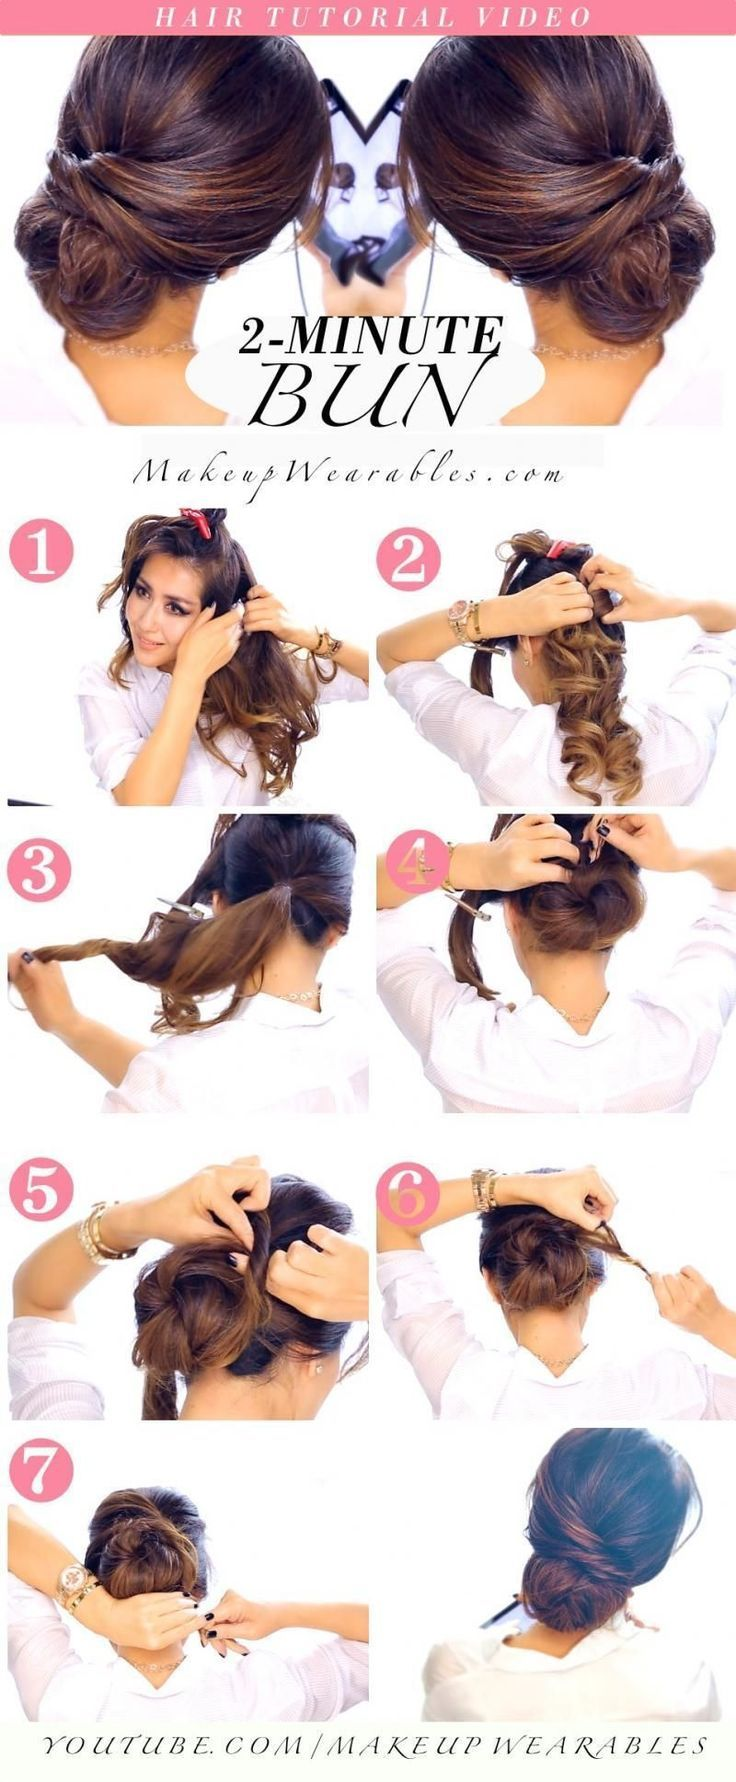 Top 25 Messy Hair Bun Tutorials Perfect For Those Lazy Mornings! #Diyhairstyles